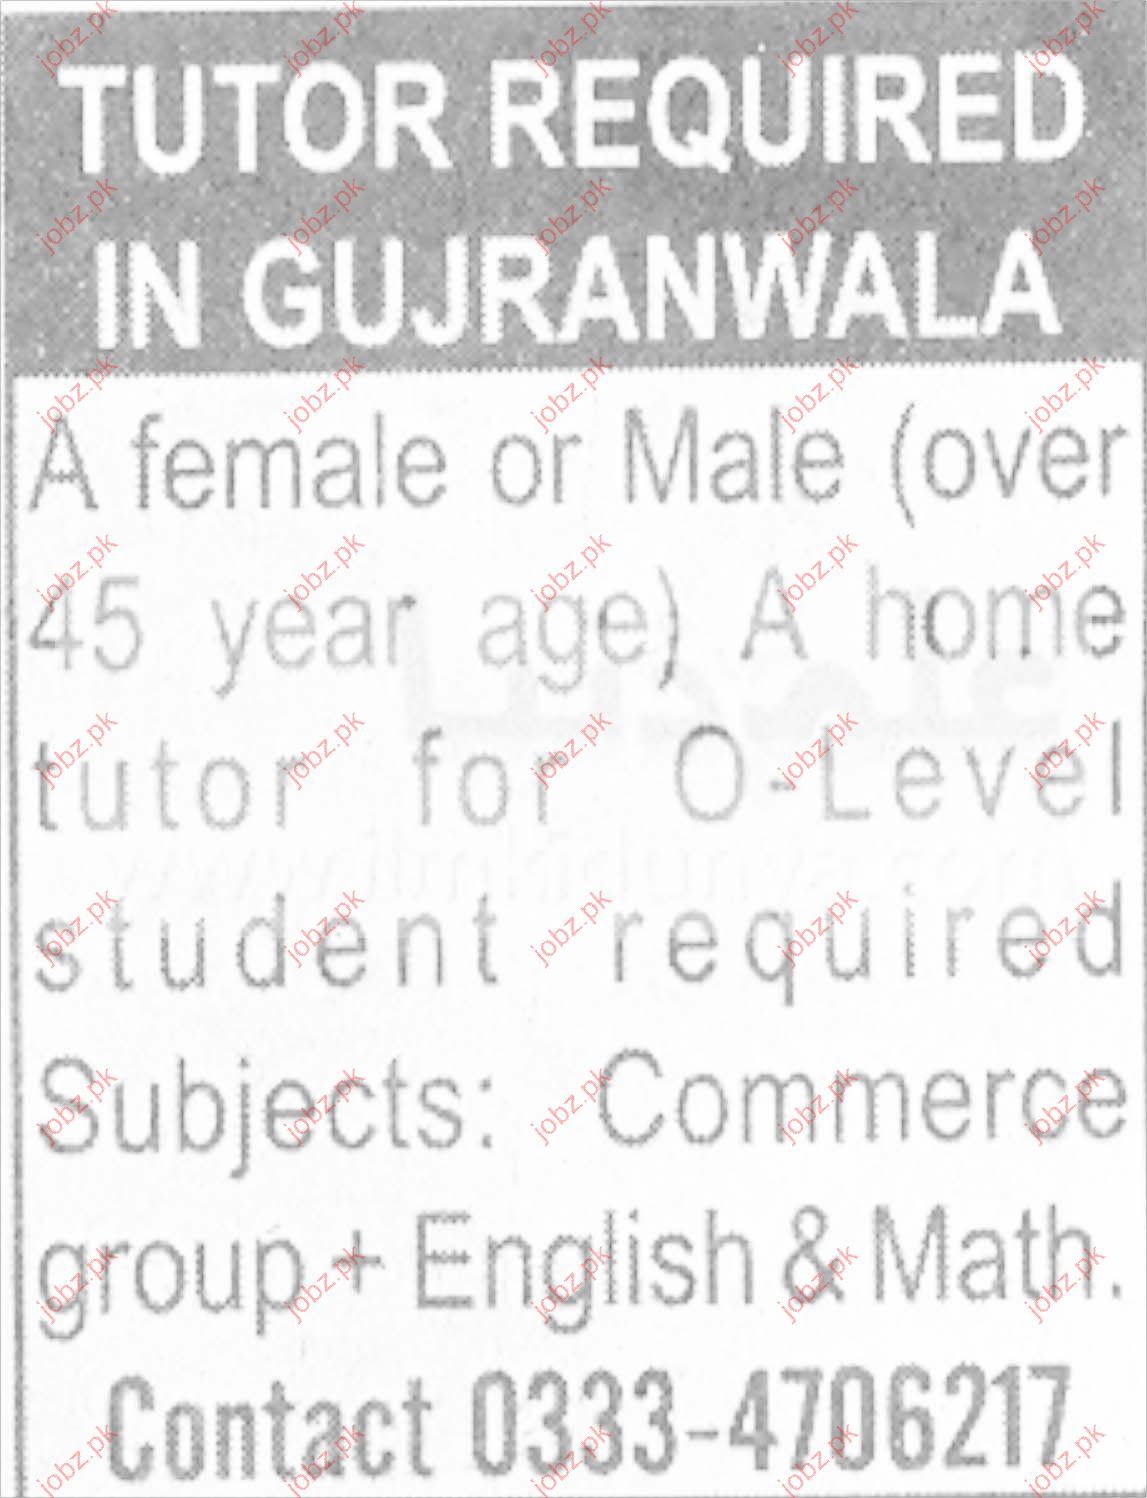 Tutor Required in Gujranwala